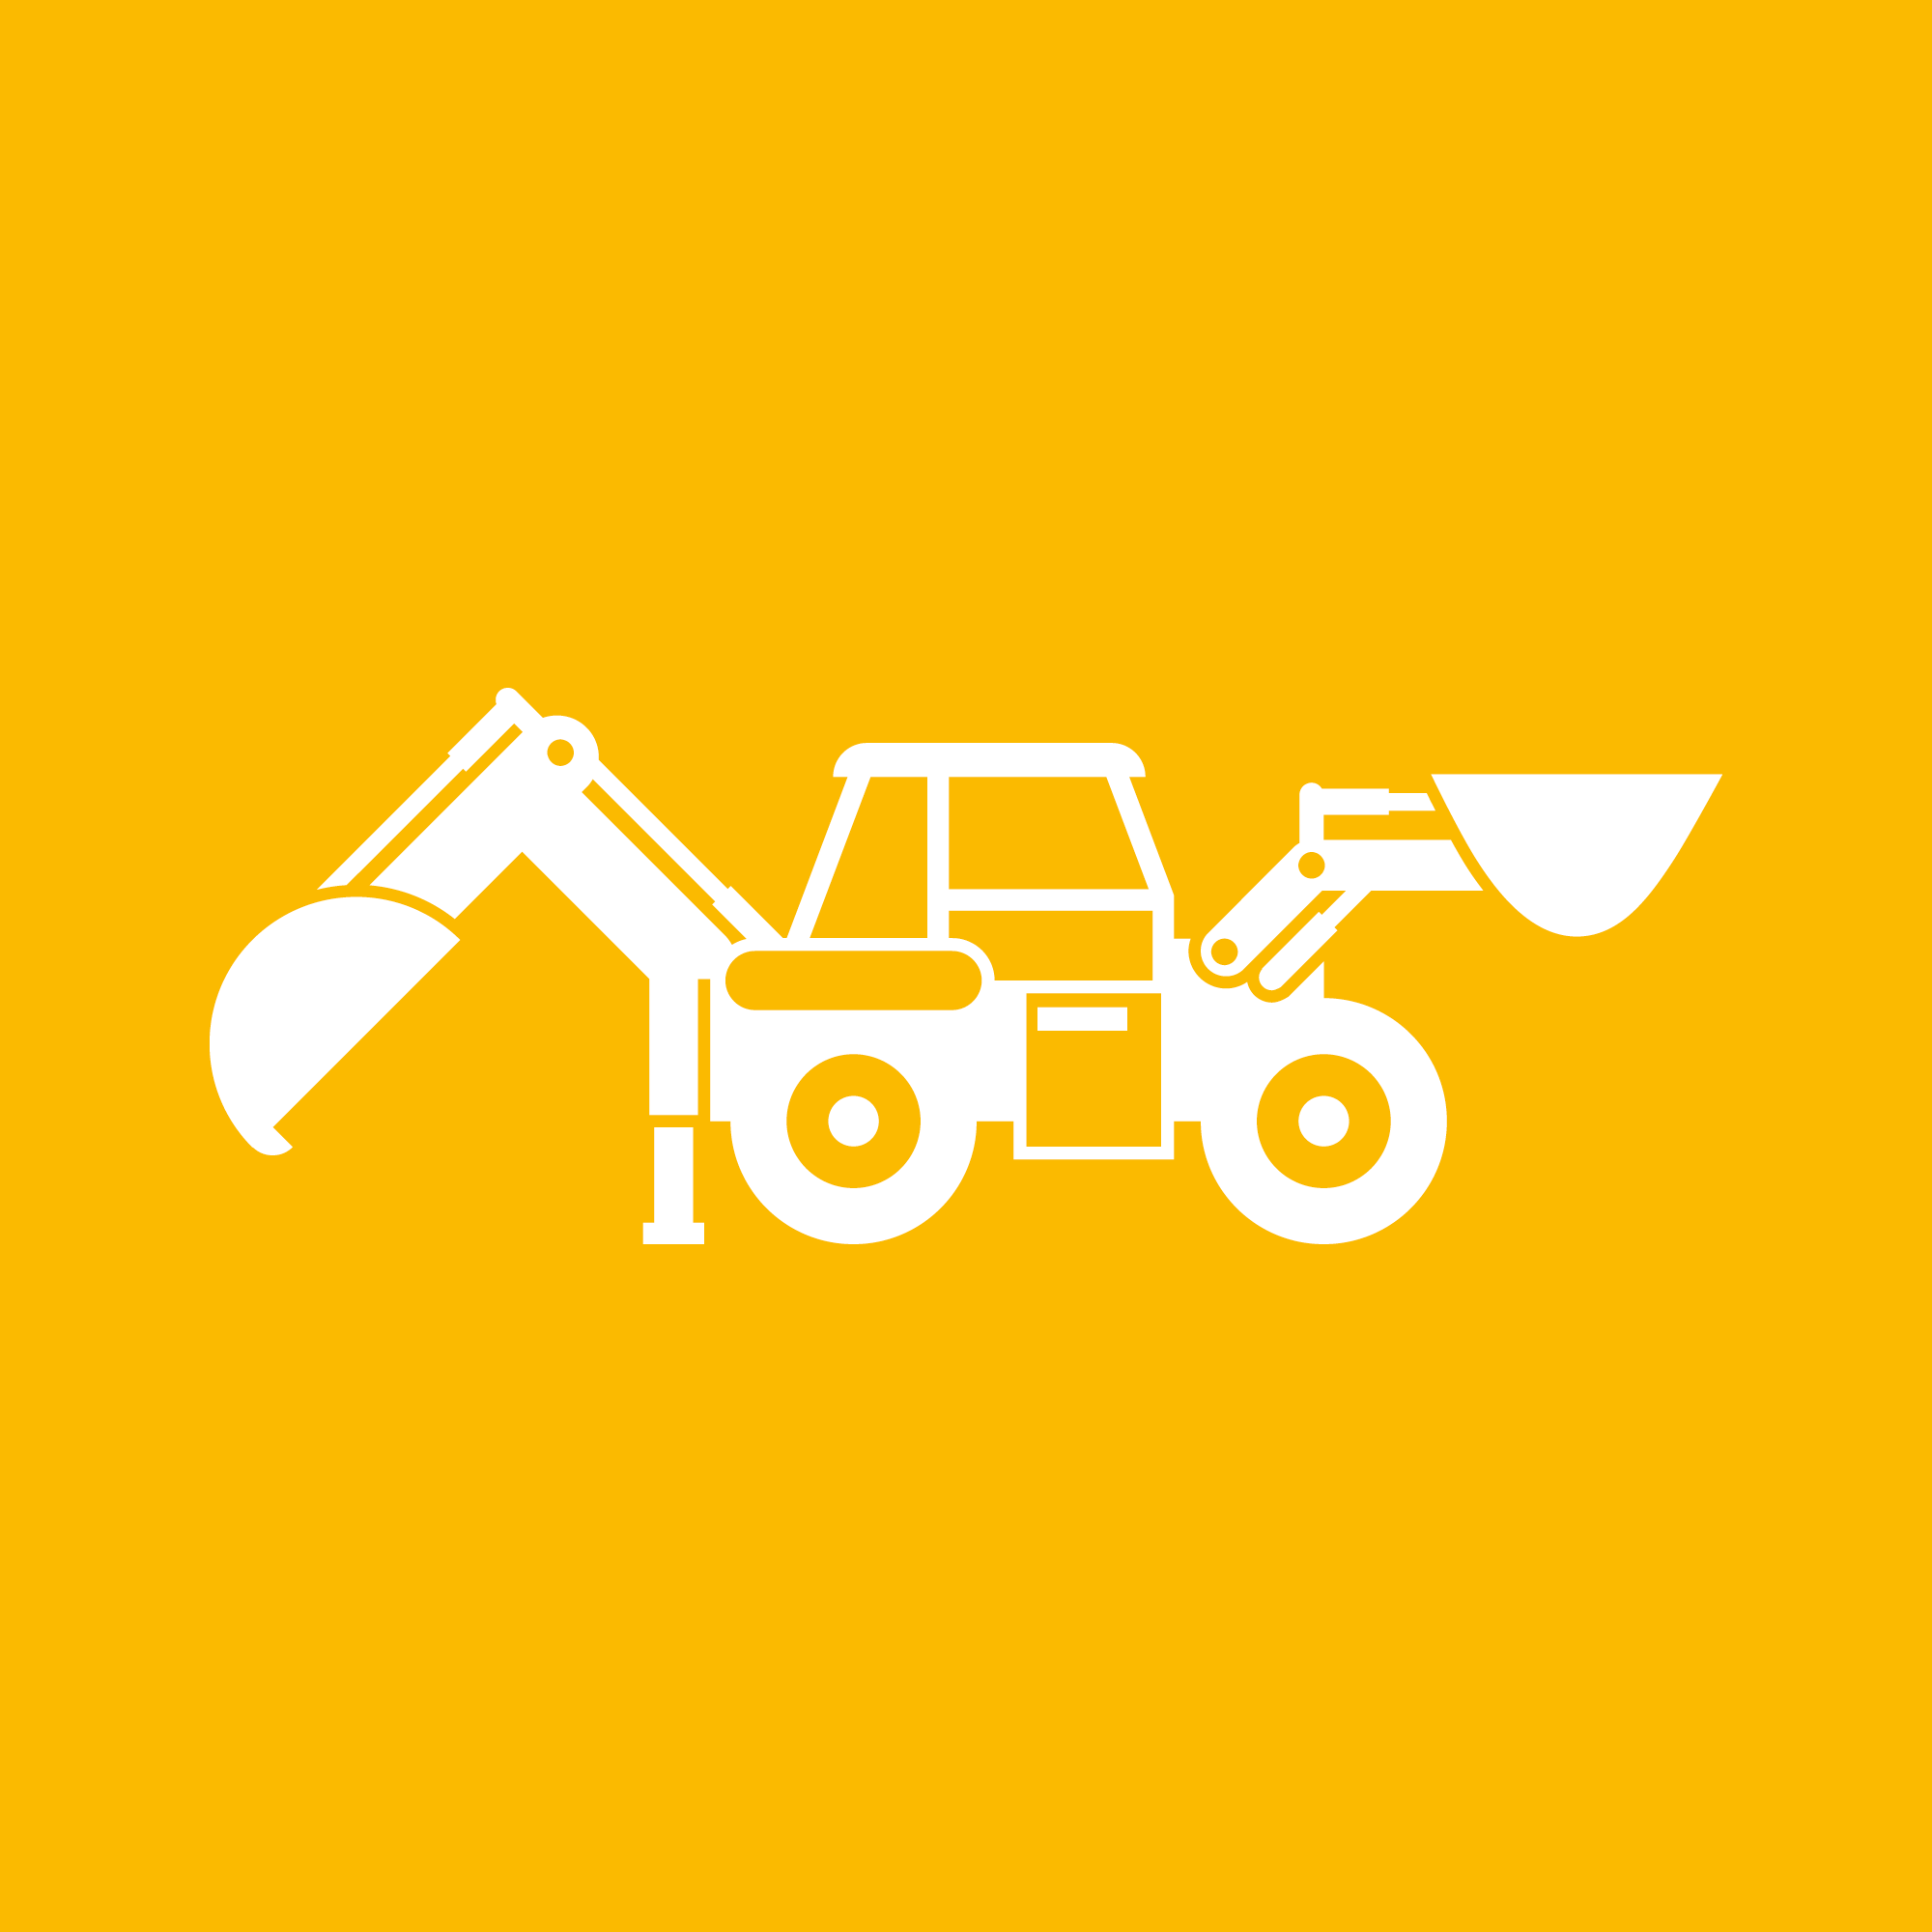 Volvo backhoe hire adelaide